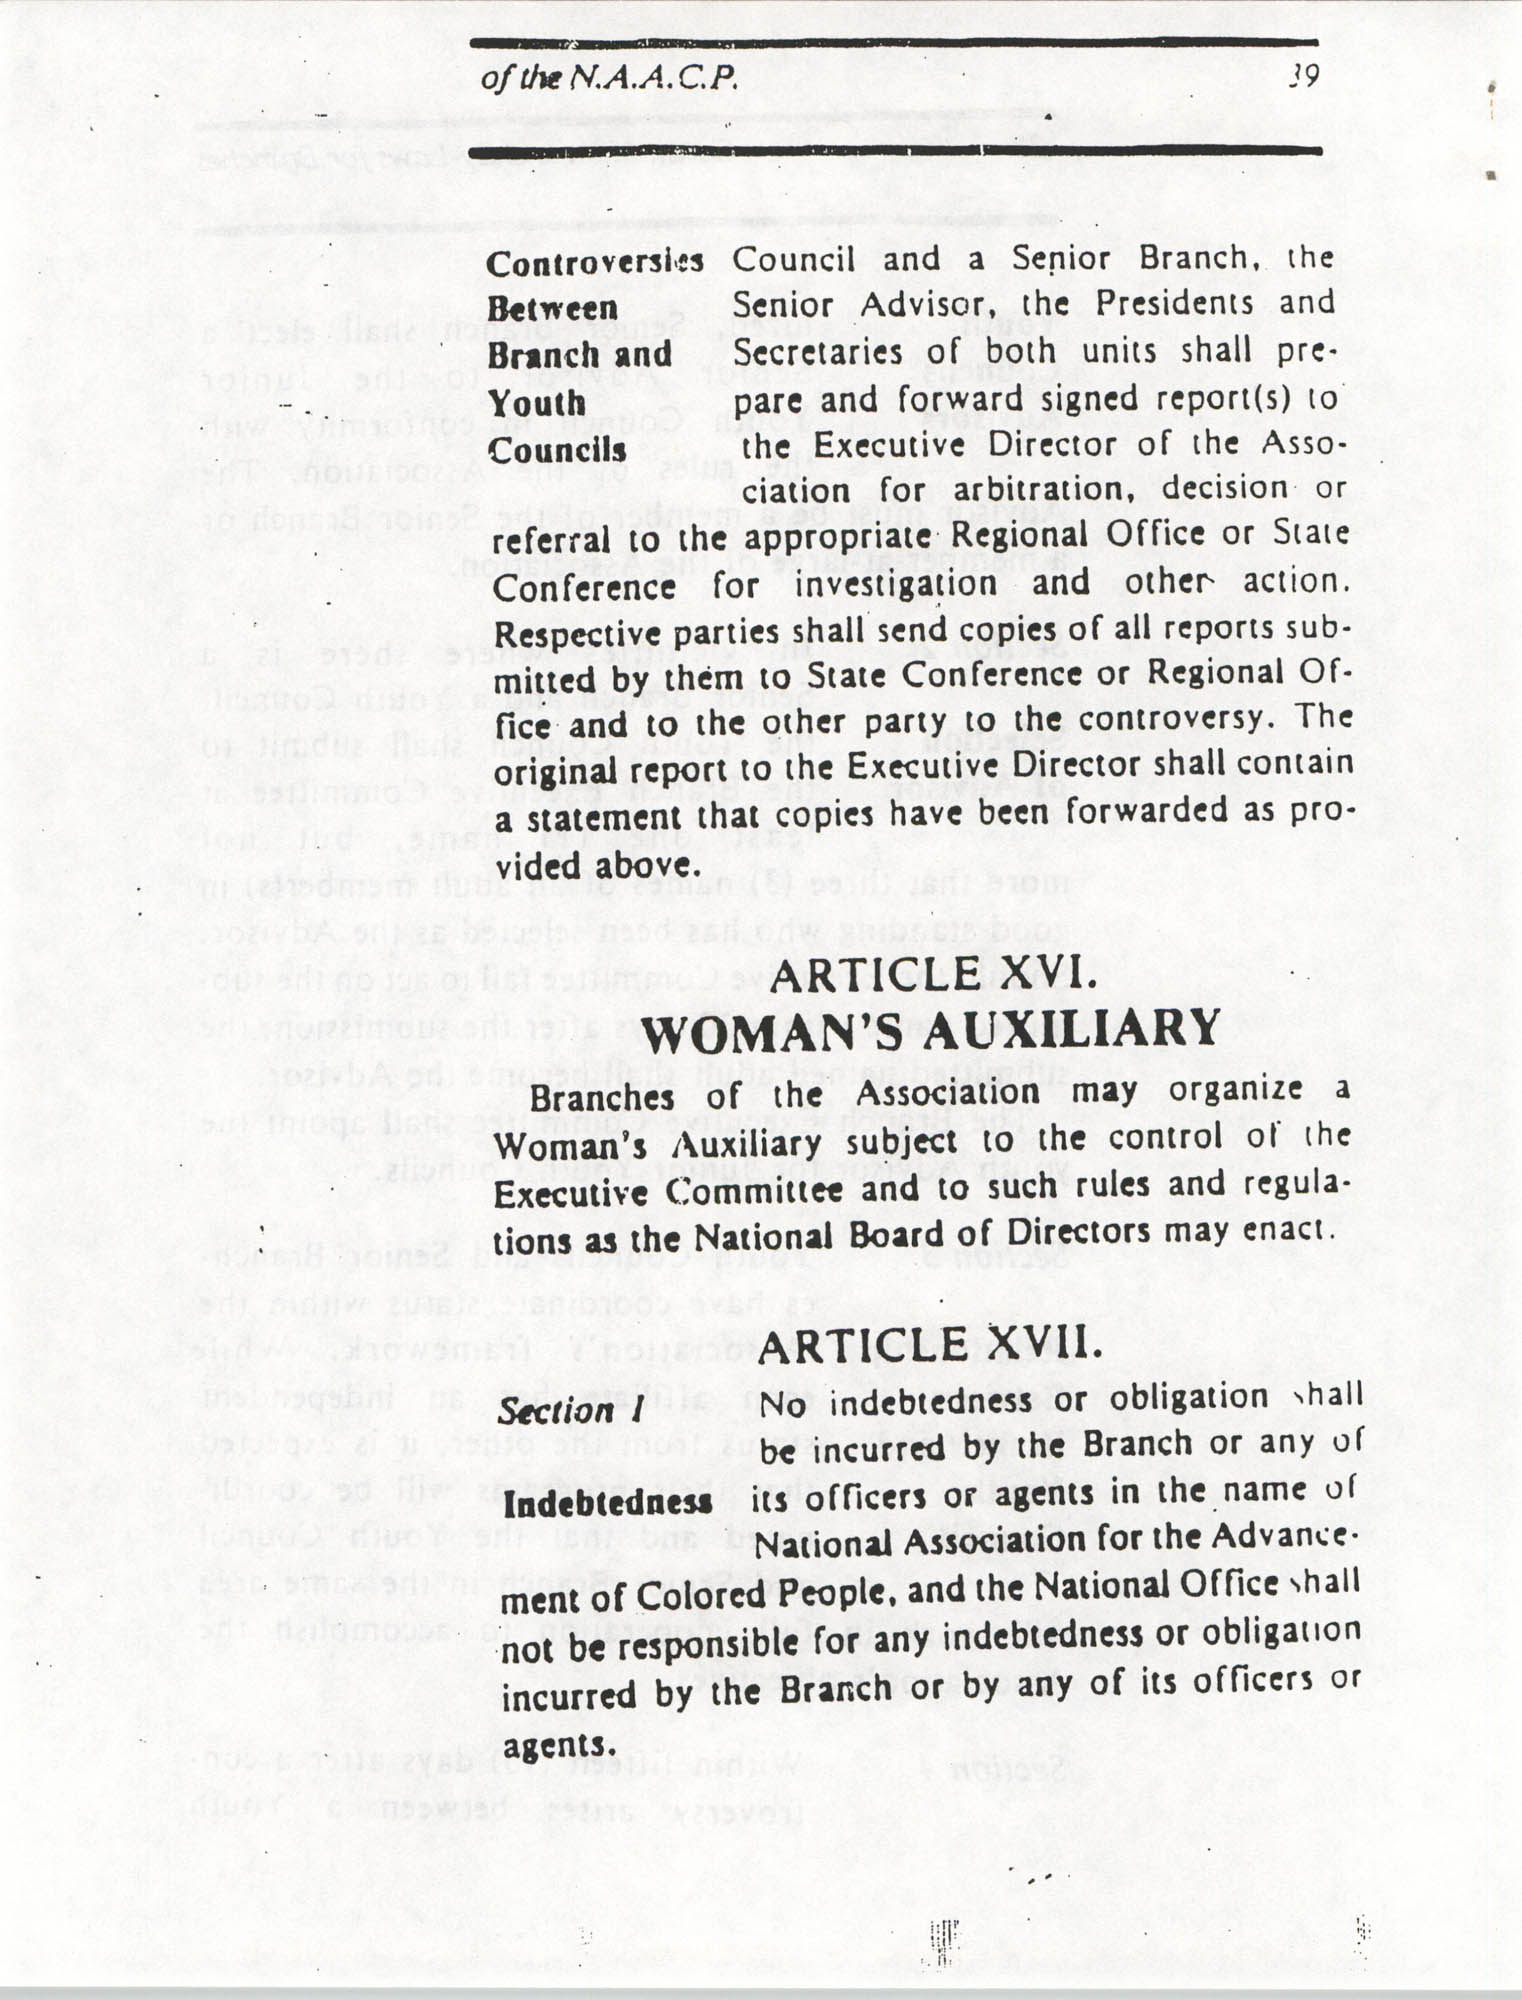 Constitution and By-Laws for Branches of the NAACP, March 1992, Page 39